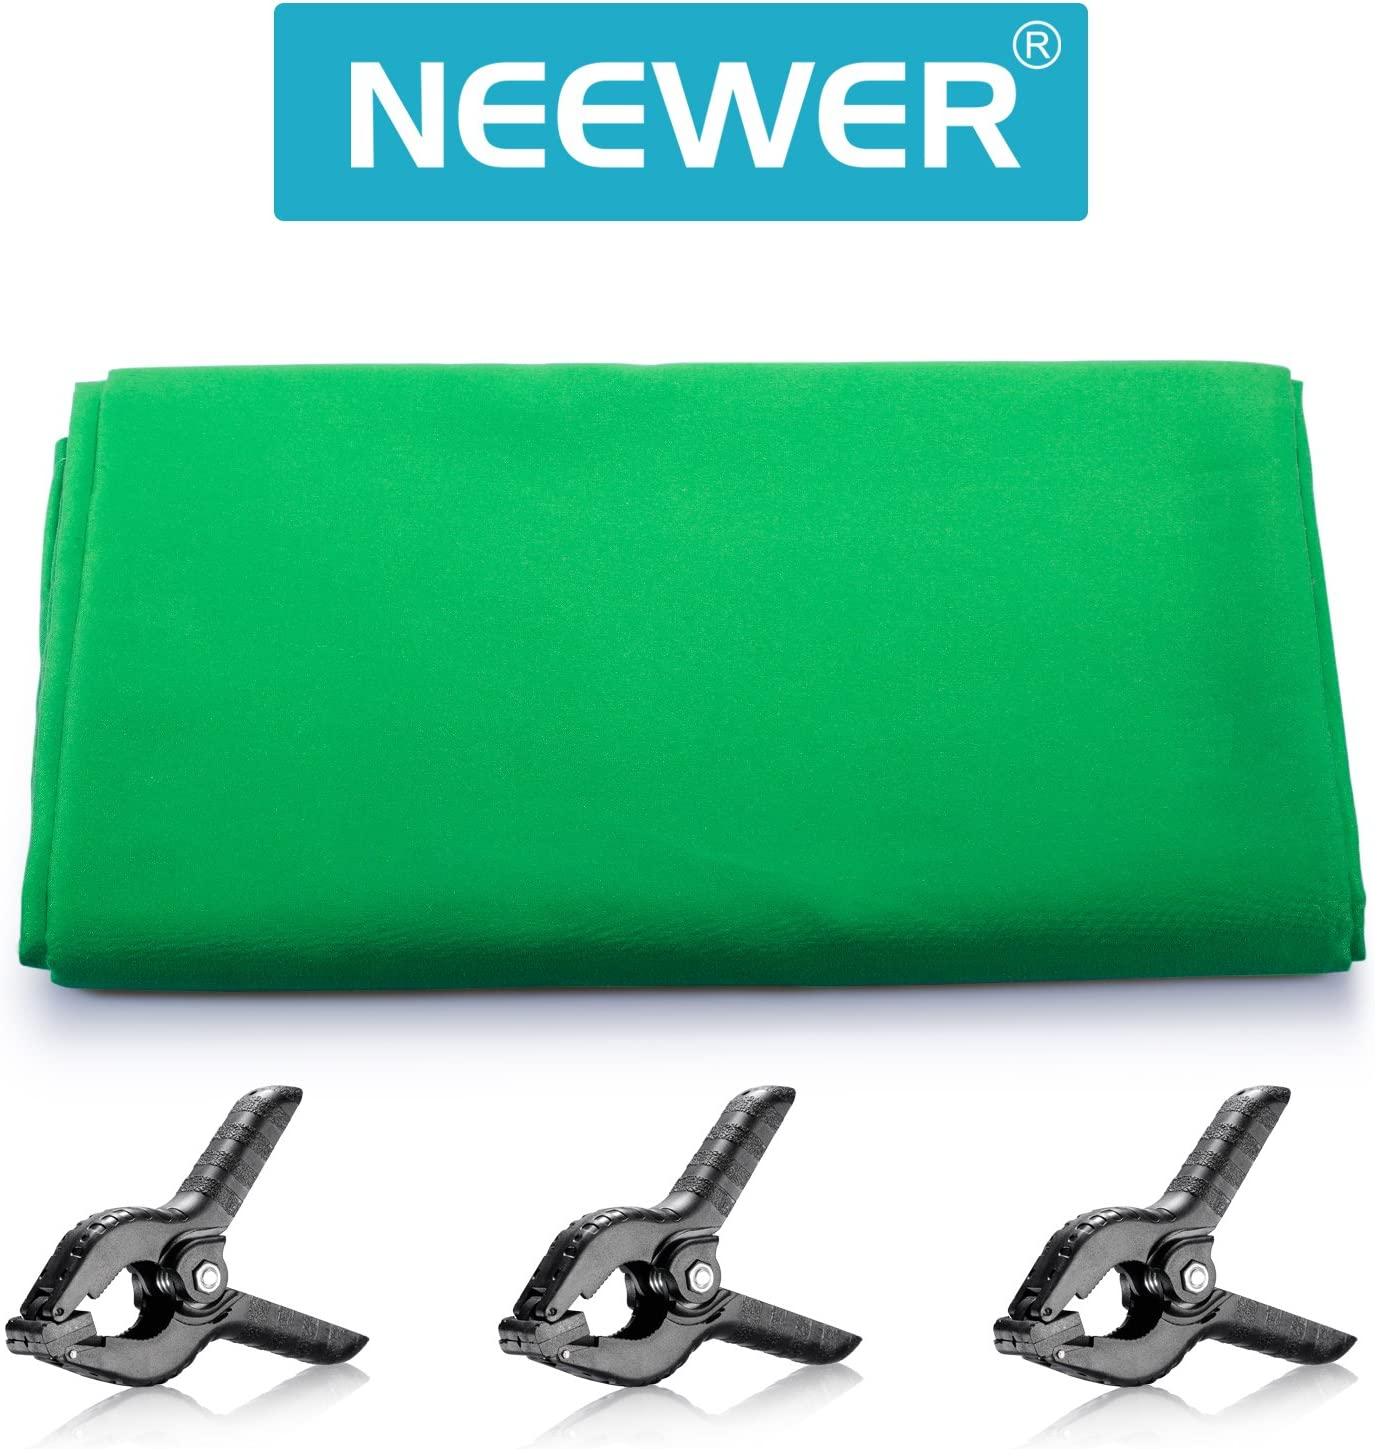 Neewer 9 x 15 feet//2.7 x 4.6 Meters Green Chromakey Muslin Backdrop Background Screen with 3 Clamps for Photo Video Studio Photography